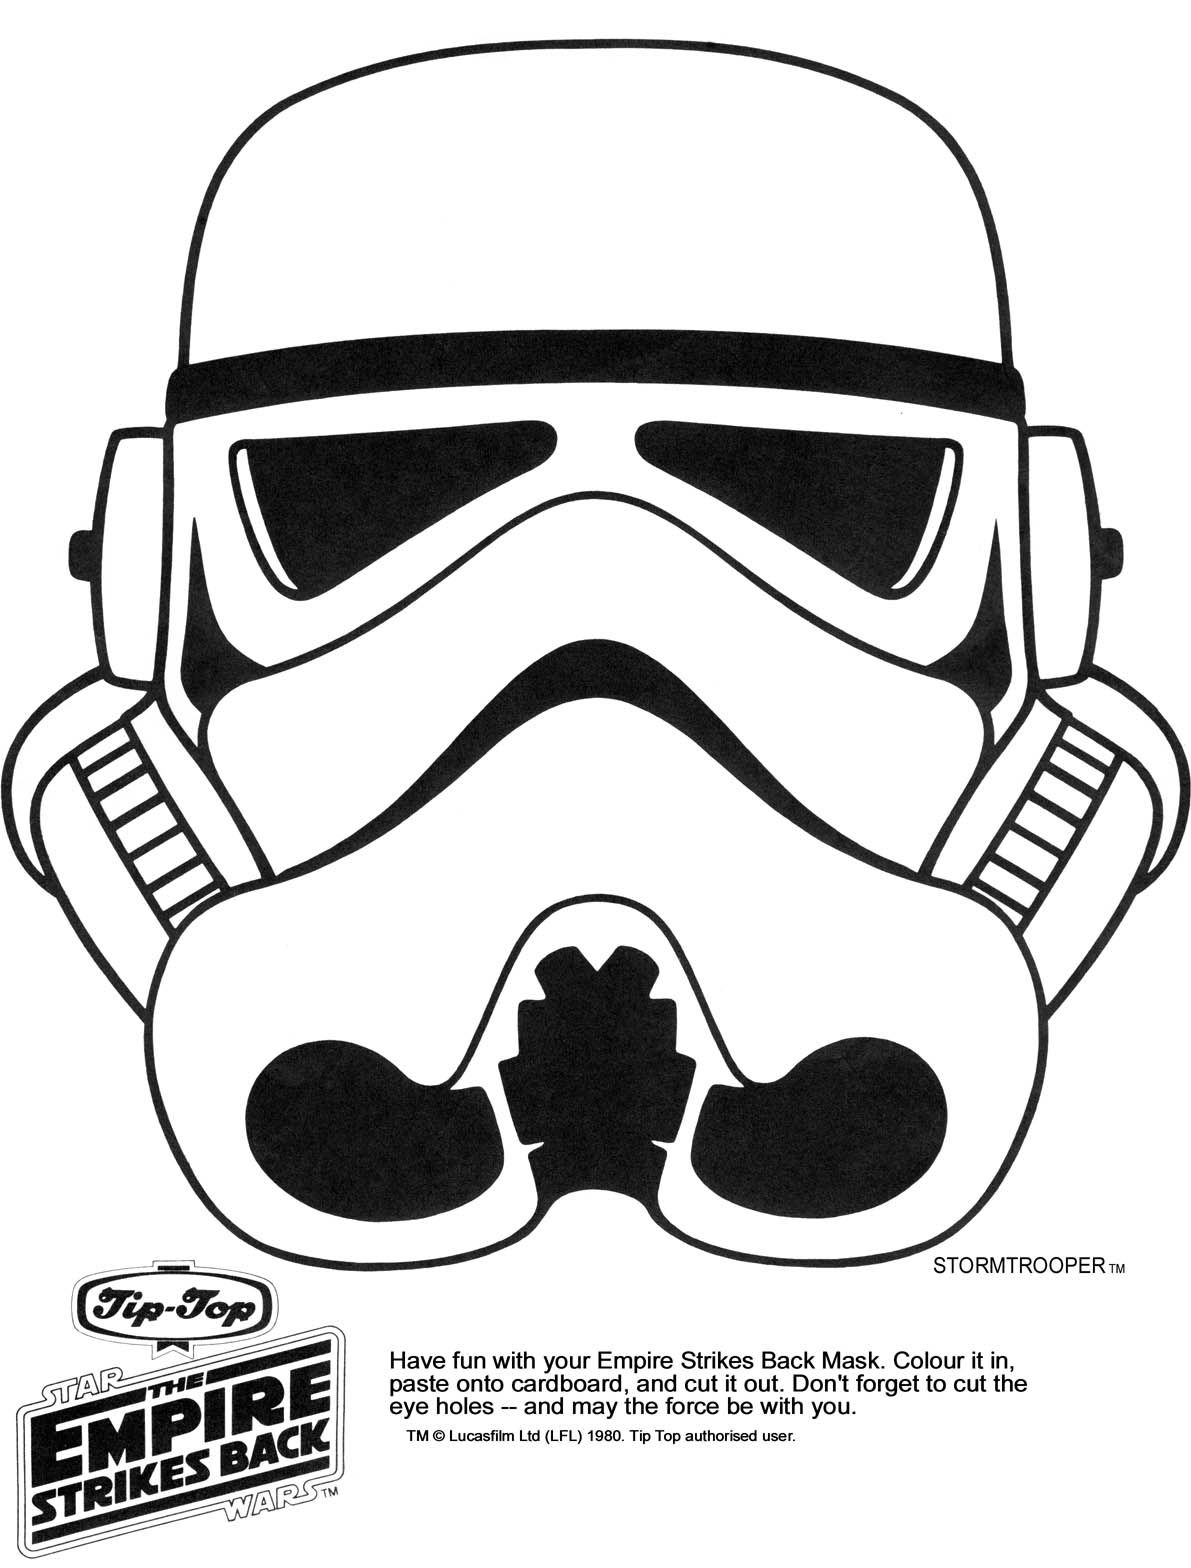 photograph relating to Stormtrooper Printable referred to as Star Wars Halloween Templates Click on the visualize for the